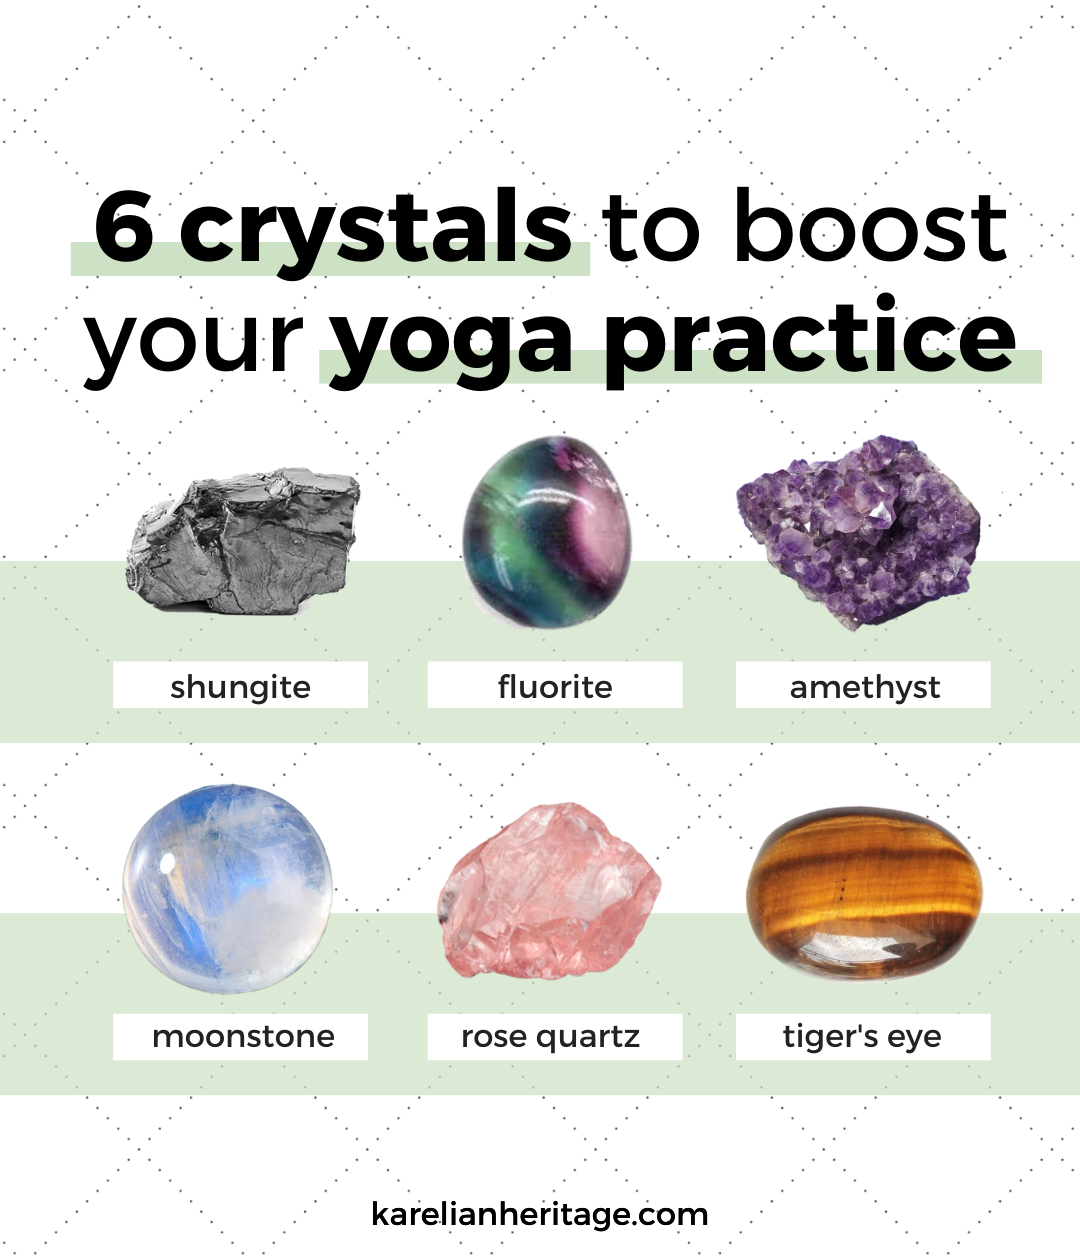 6-crystals-to-boost-your-yoga-practice